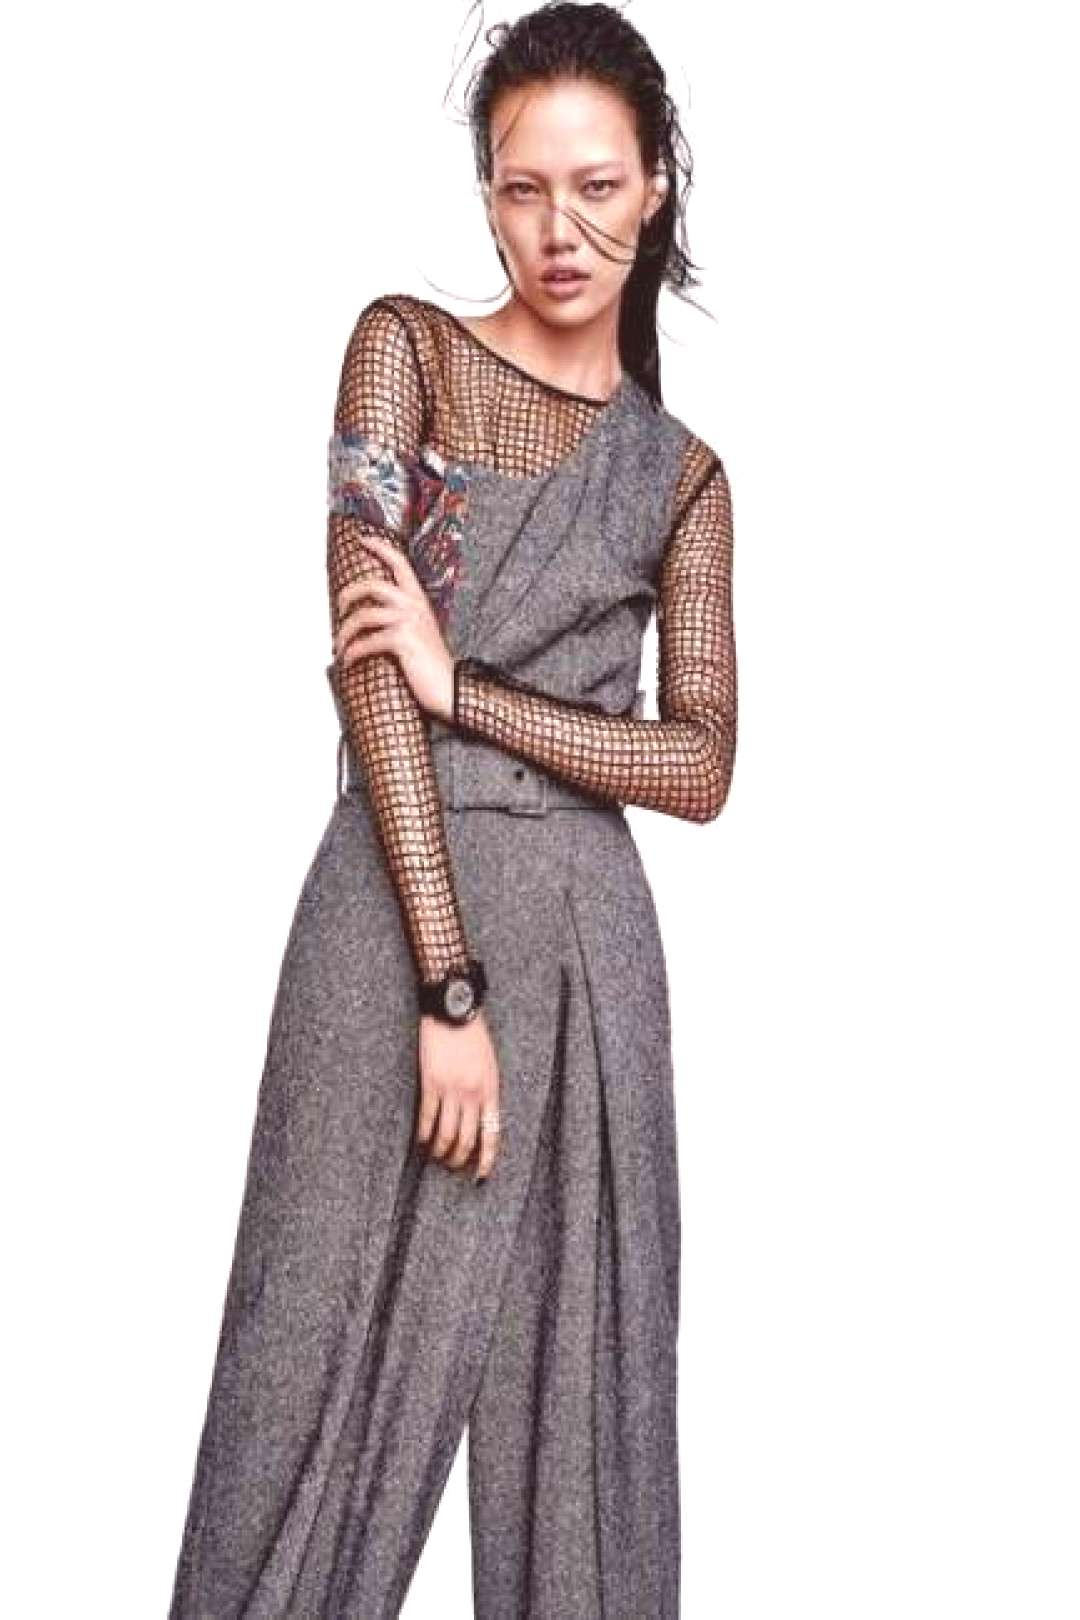 23 Ideas For Fashion Editorial Edgy November 2015#edgy